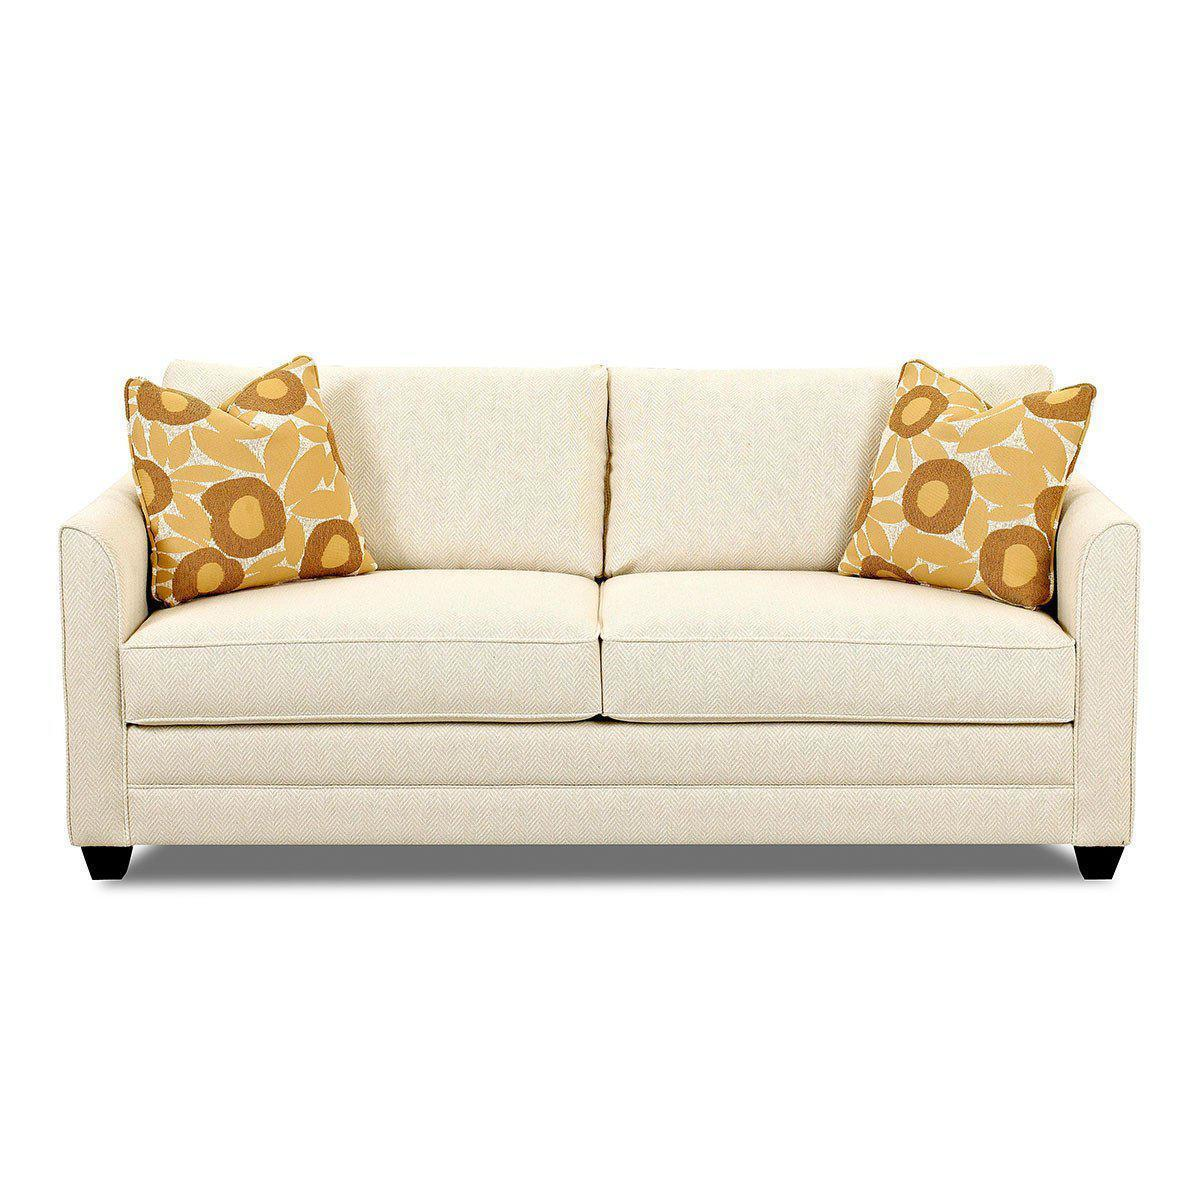 Outstanding Twin Sofabed Com Onthecornerstone Fun Painted Chair Ideas Images Onthecornerstoneorg